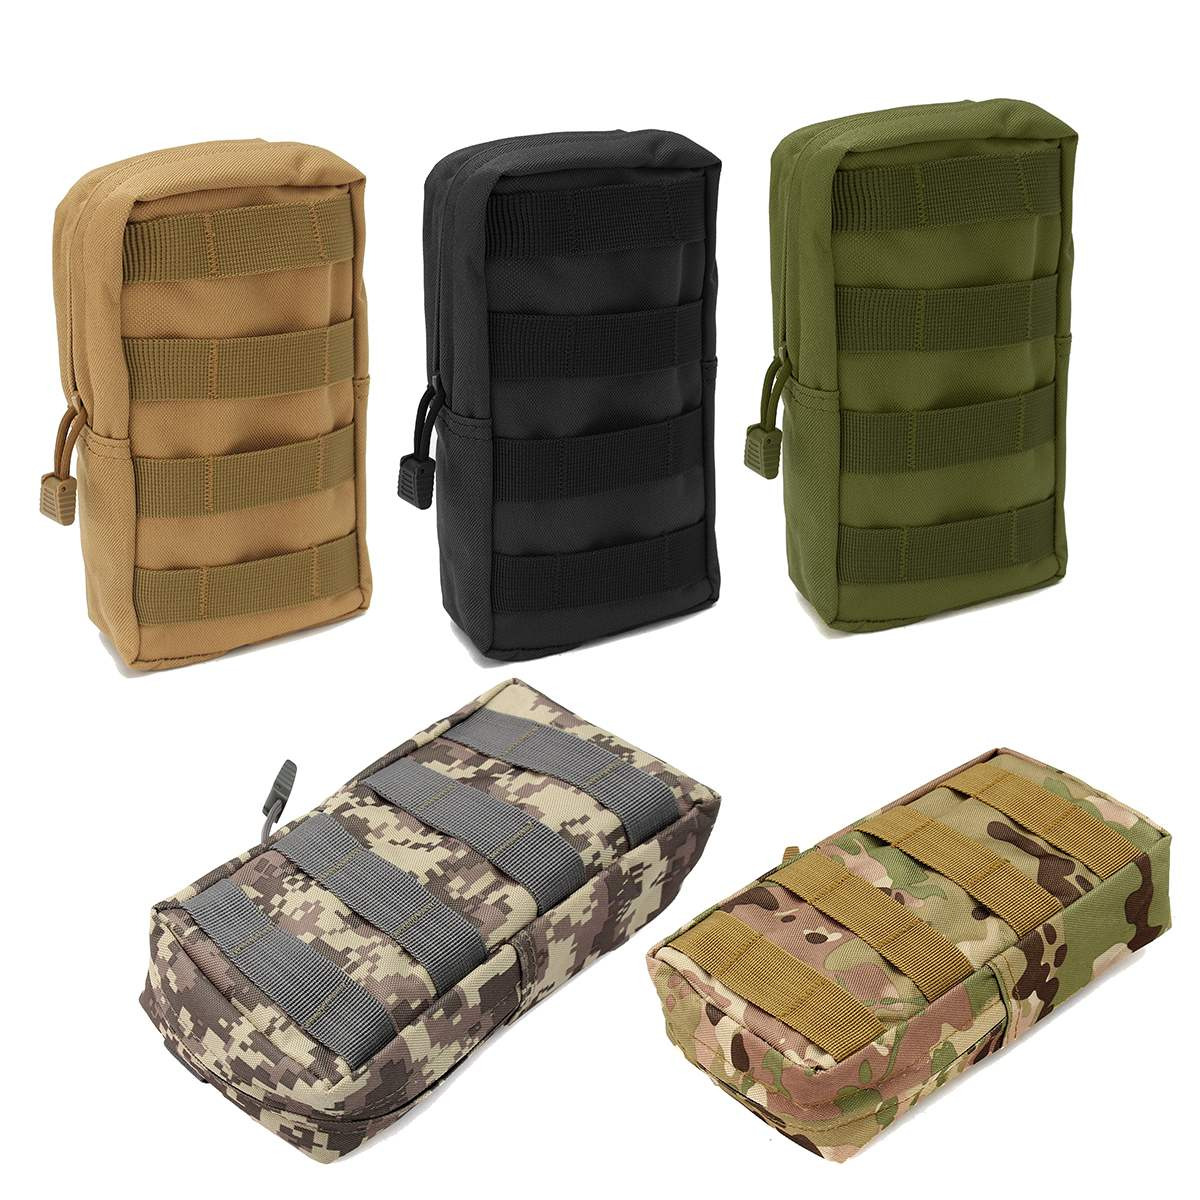 Nylon Tactical Molle Waist Bag Waterproof Medical First Aid Outdoor Bags Utility Emergency Storage Pouch Bag Emergency Kits